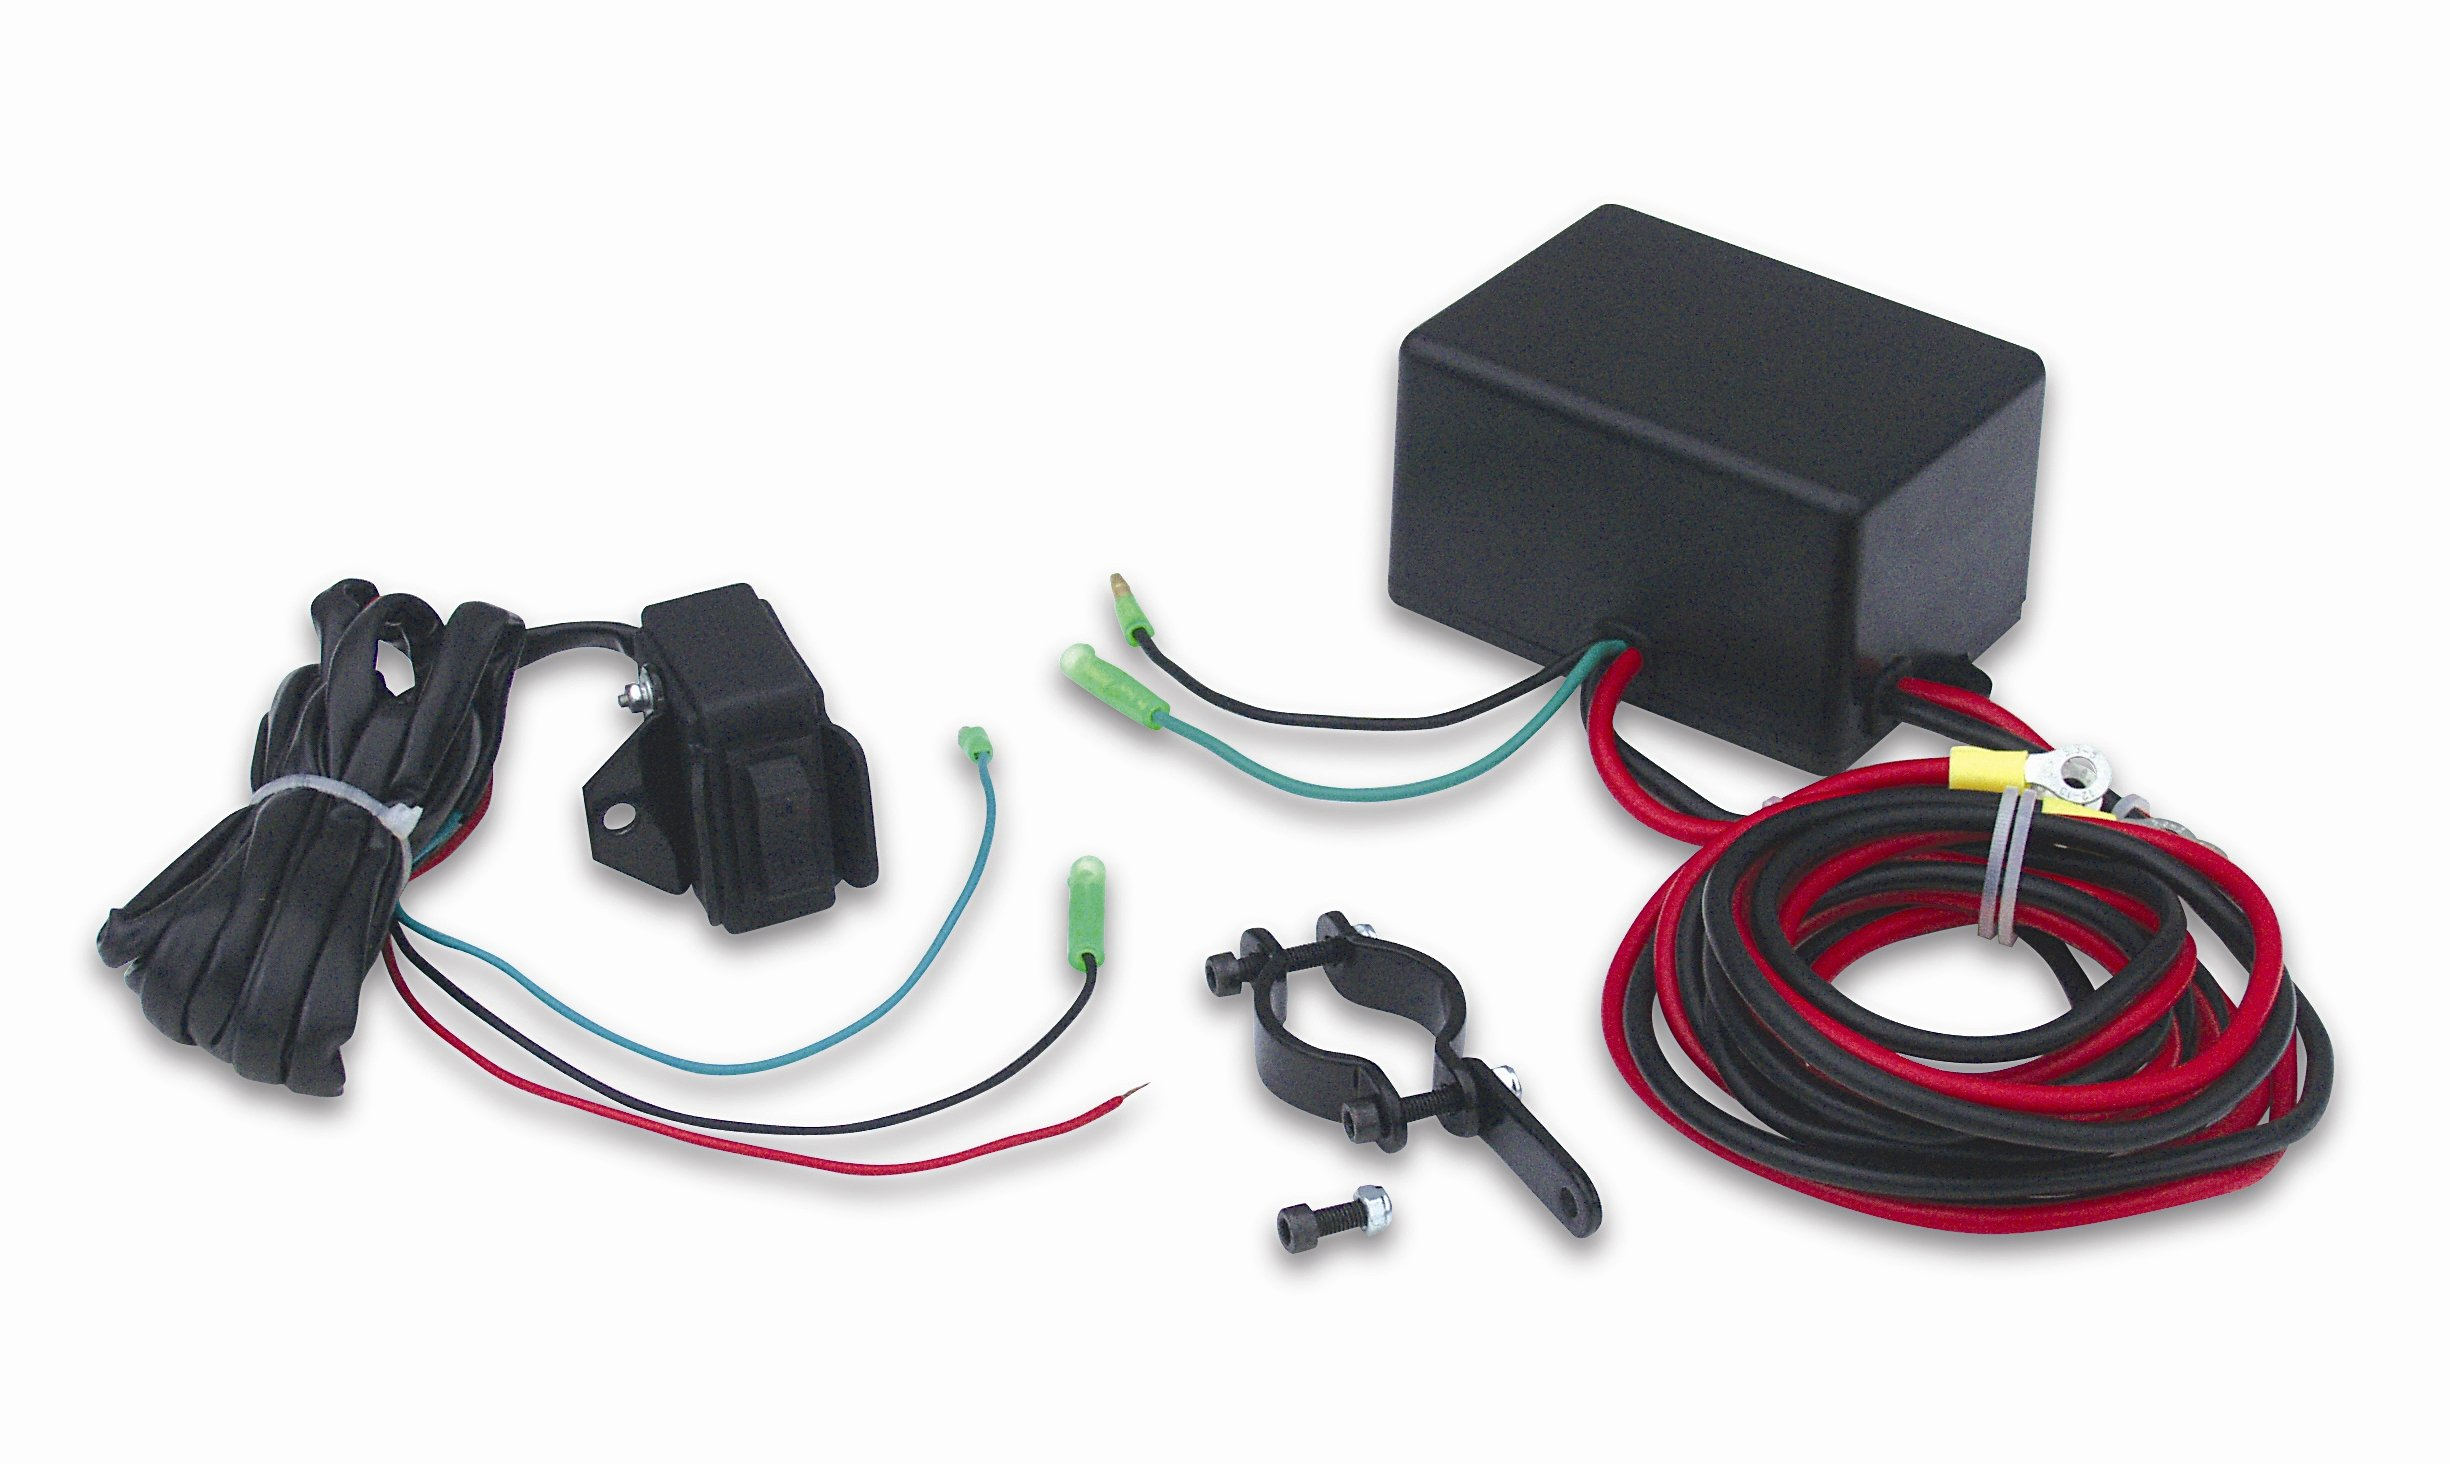 Superwinch 2320200 Kit - ATV Switch Upgrade Kit for LT2000 - Includes handlebar mountable switch, wiring & hardware